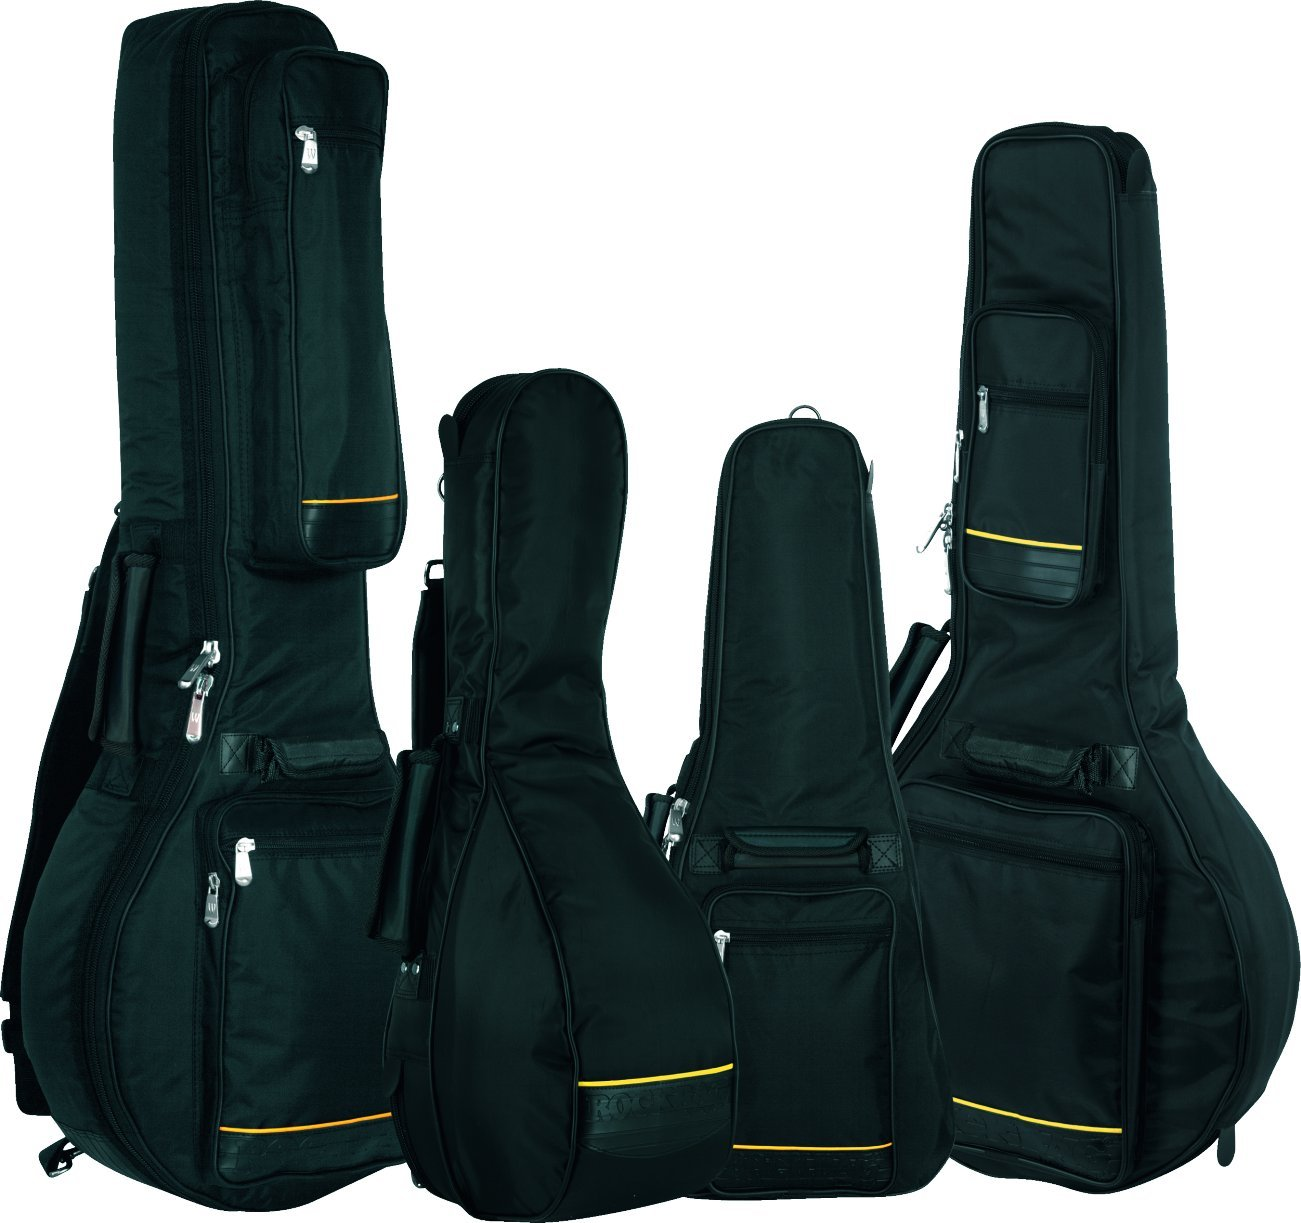 RB 20613 B/PLUS Custodia Premium Plus per Mandolino